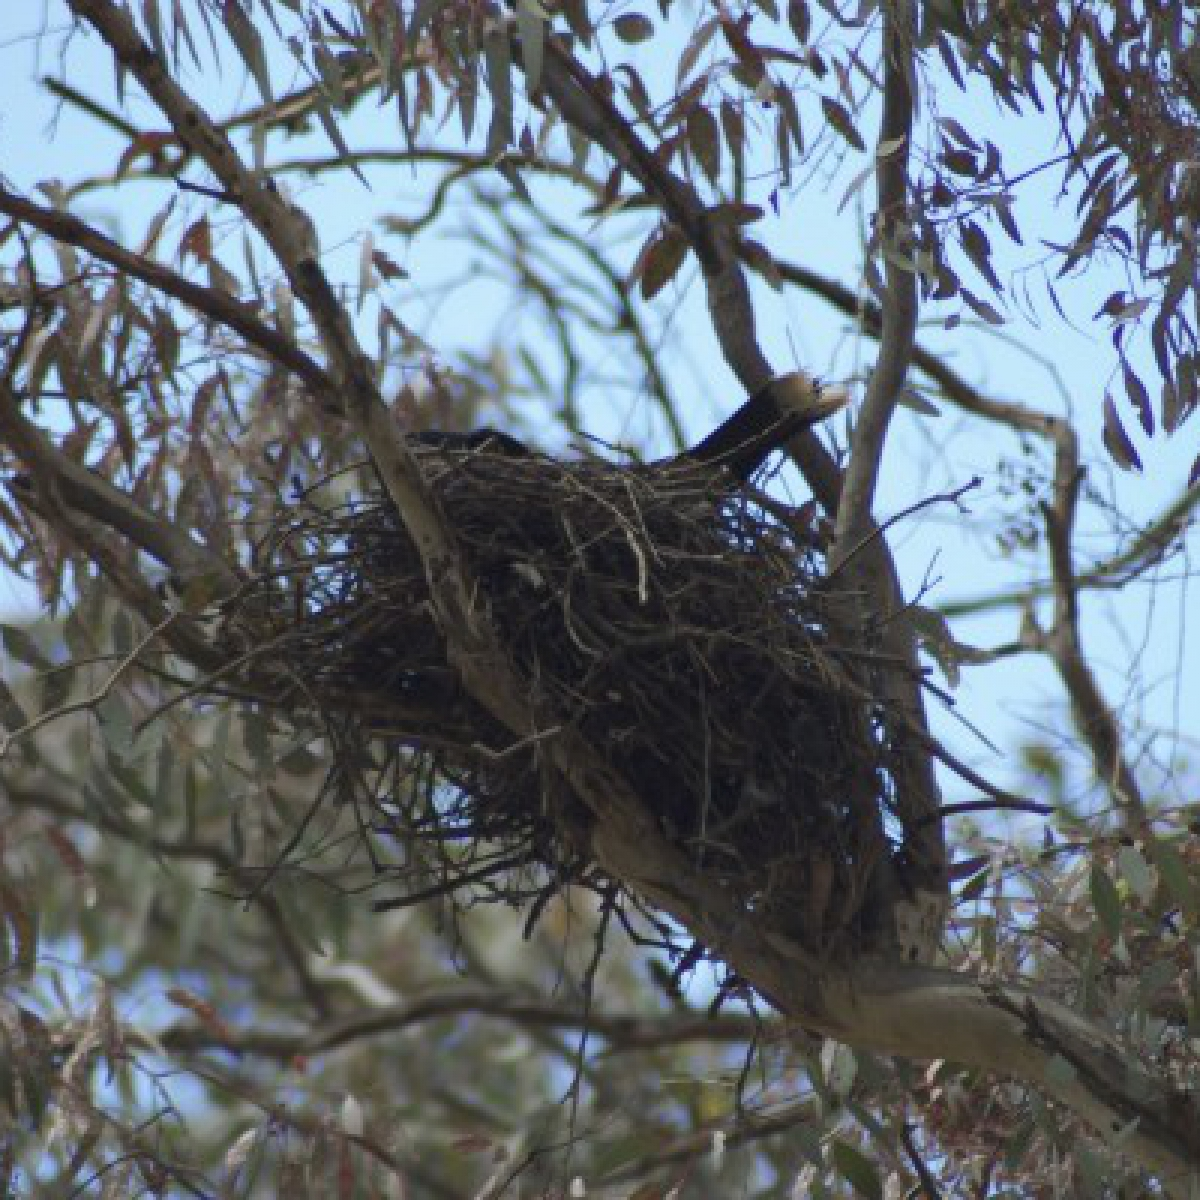 805 Pied Currawong on nest